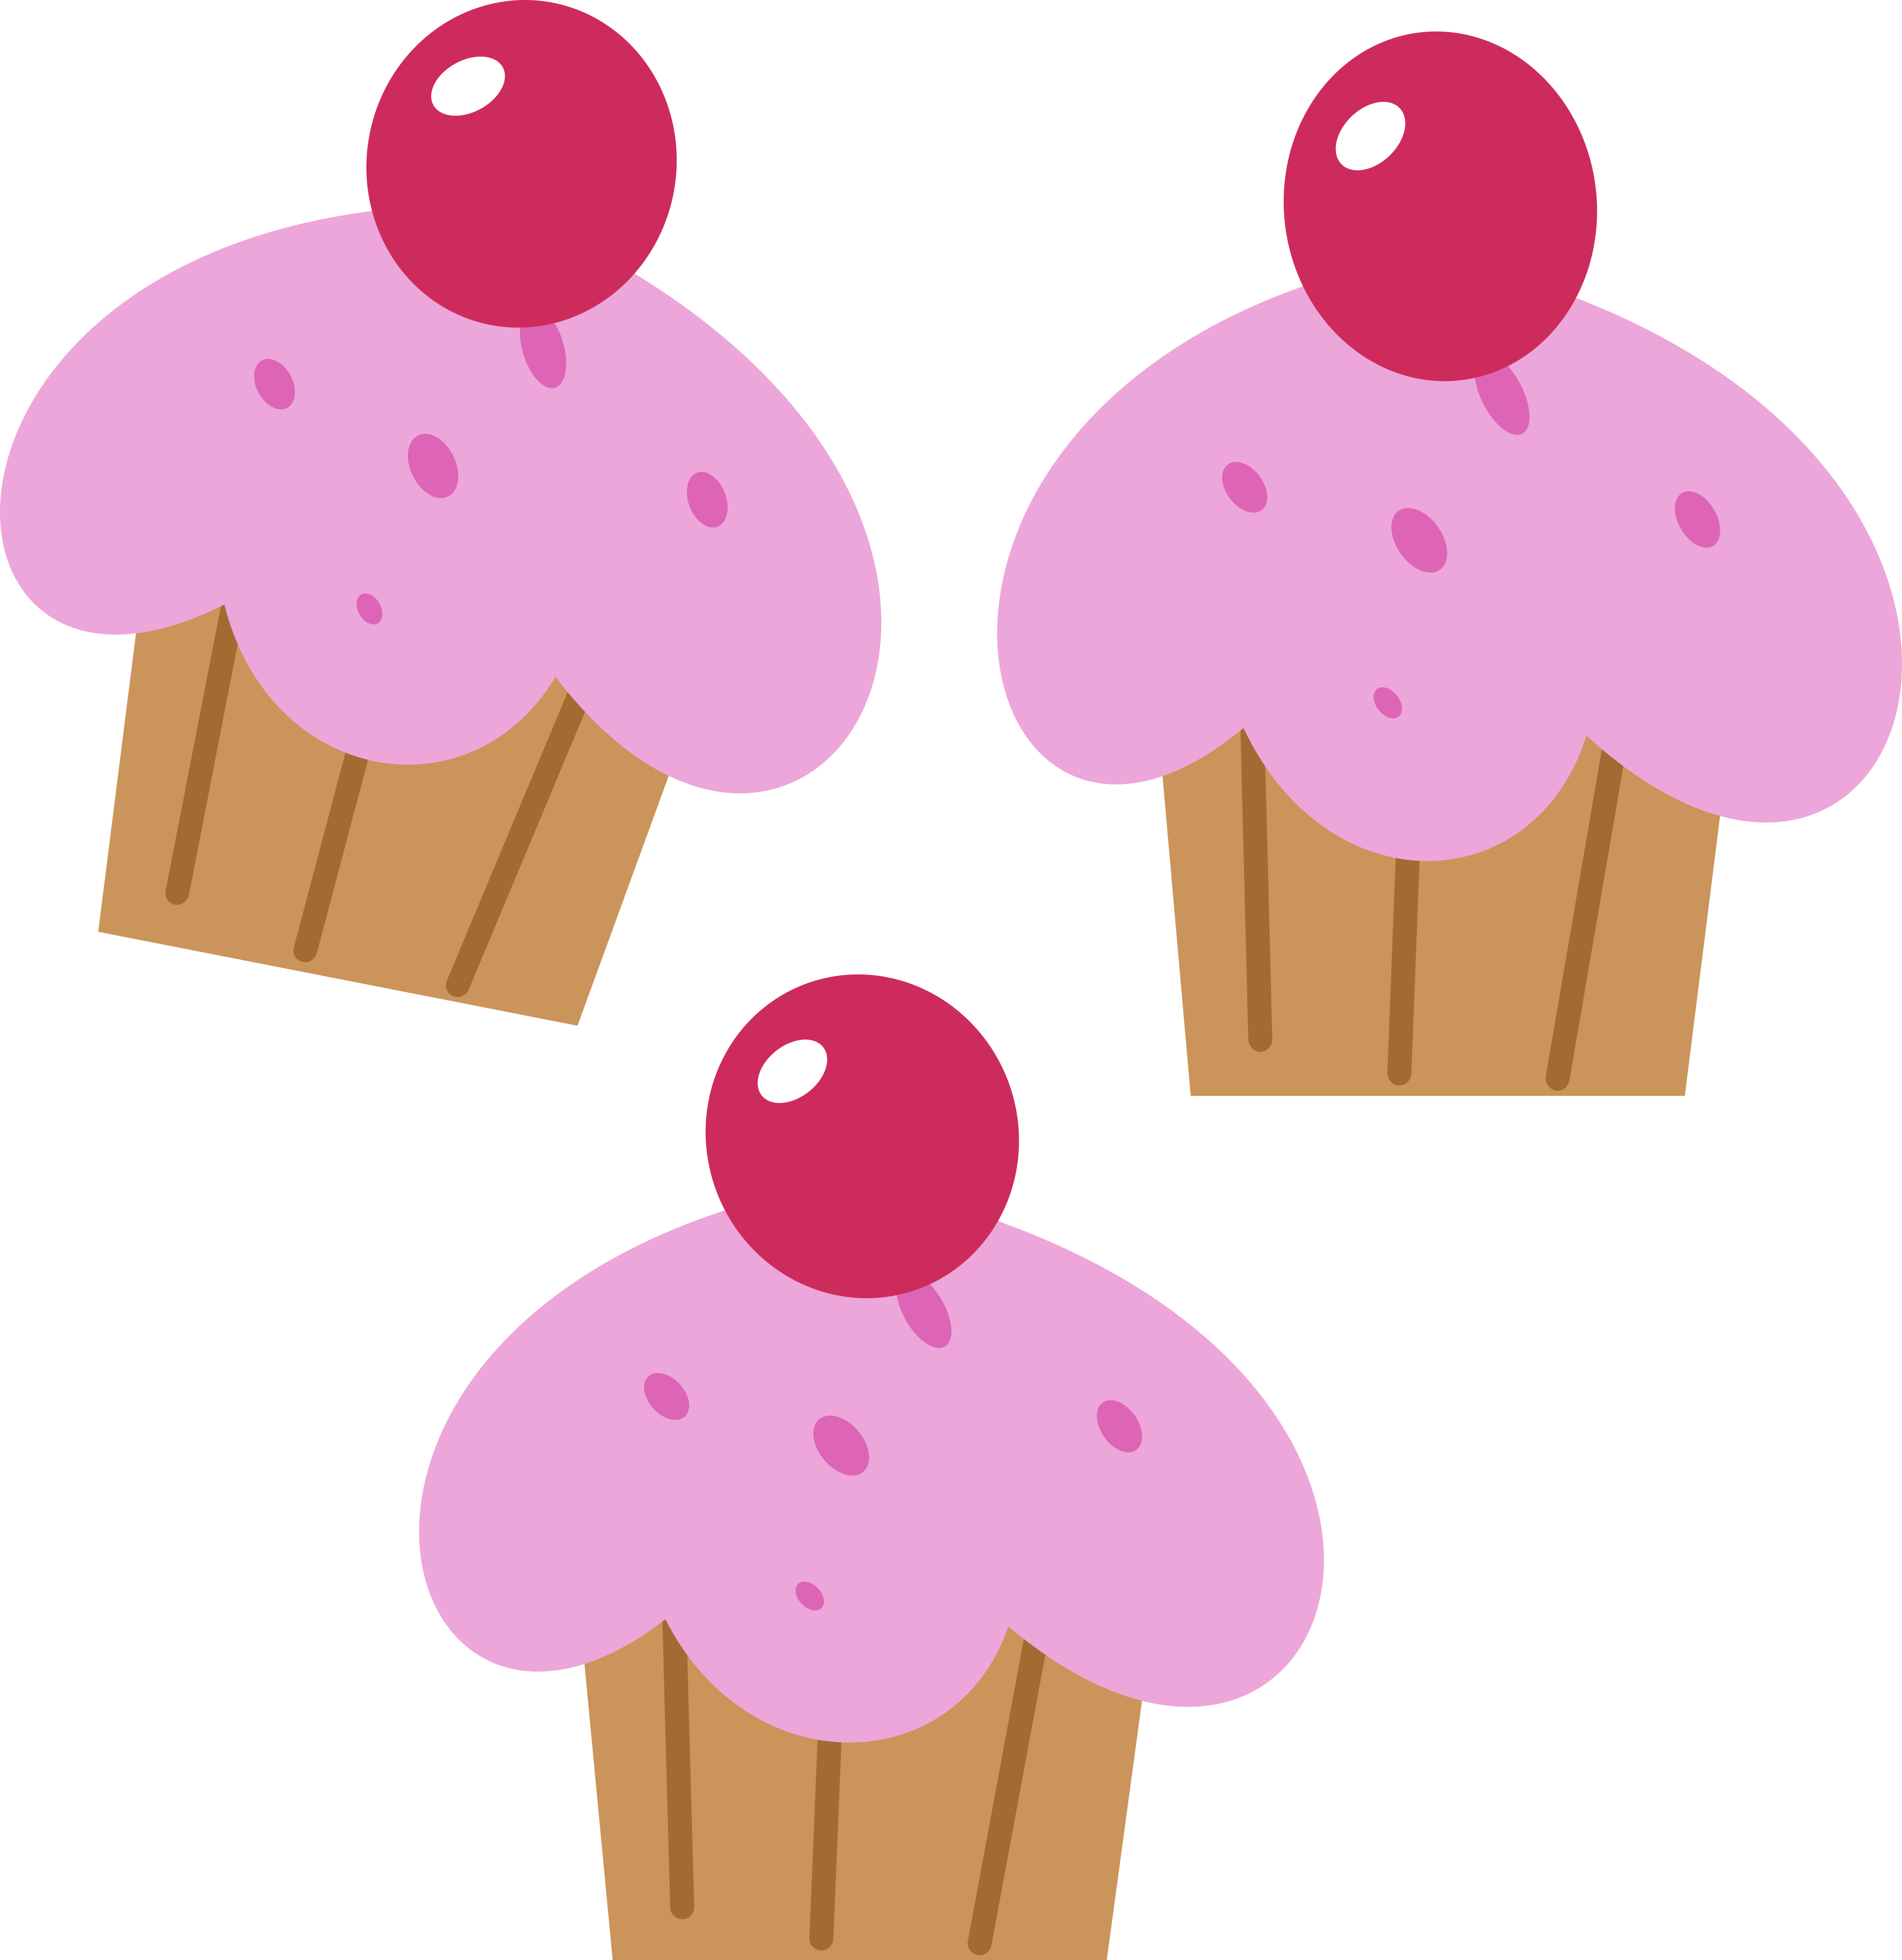 The Cup Cake Taste